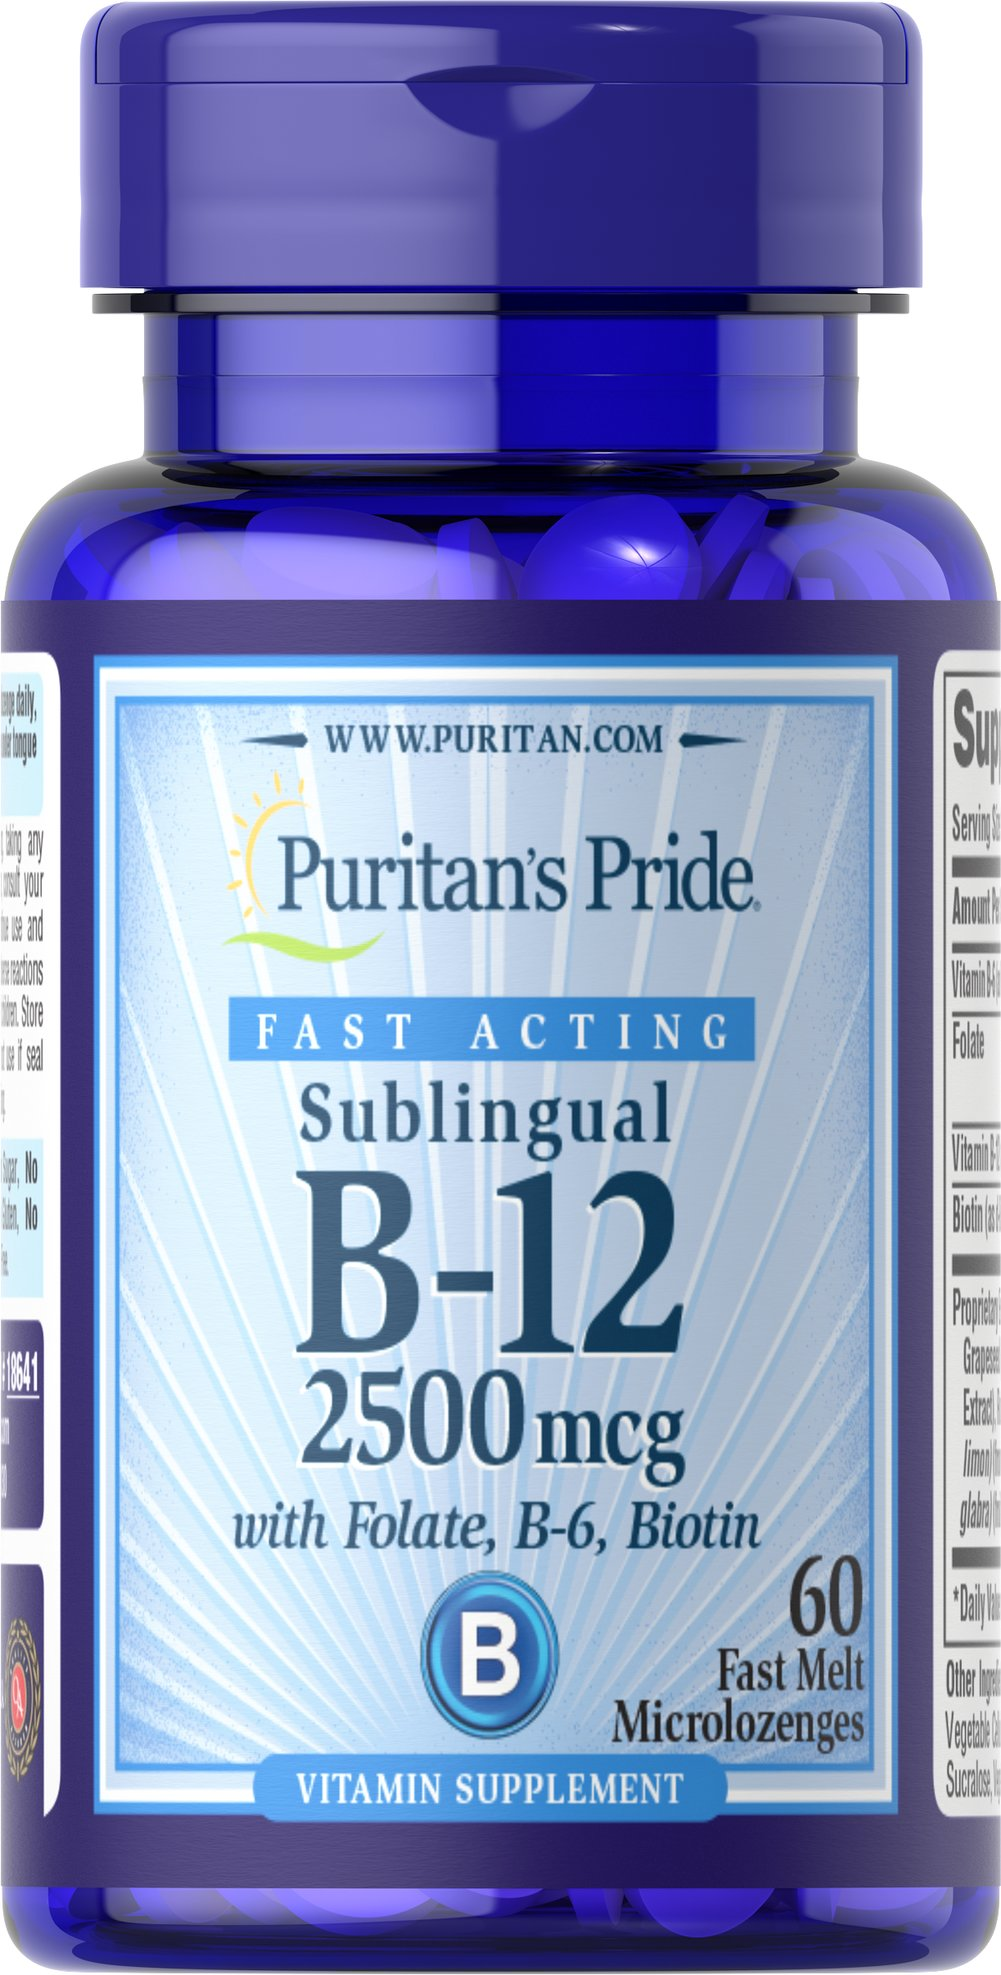 Vitamin B-12 2500 mcg Sublingual with Folic Acid, Vitamin B-6 and Biotin <p>Sublingual microlozenges dissolve easily in your mouth</p><p>An easy way to nourish a healthy heart and circulatory system**</p><p>Helps develop and regenerate red blood cells**</p><p>Contributes to proper metabolic functioning**</p><p>Plays a role in energy metabolism in the body**</p> 60 Microlozenges 2500 mcg $19.99